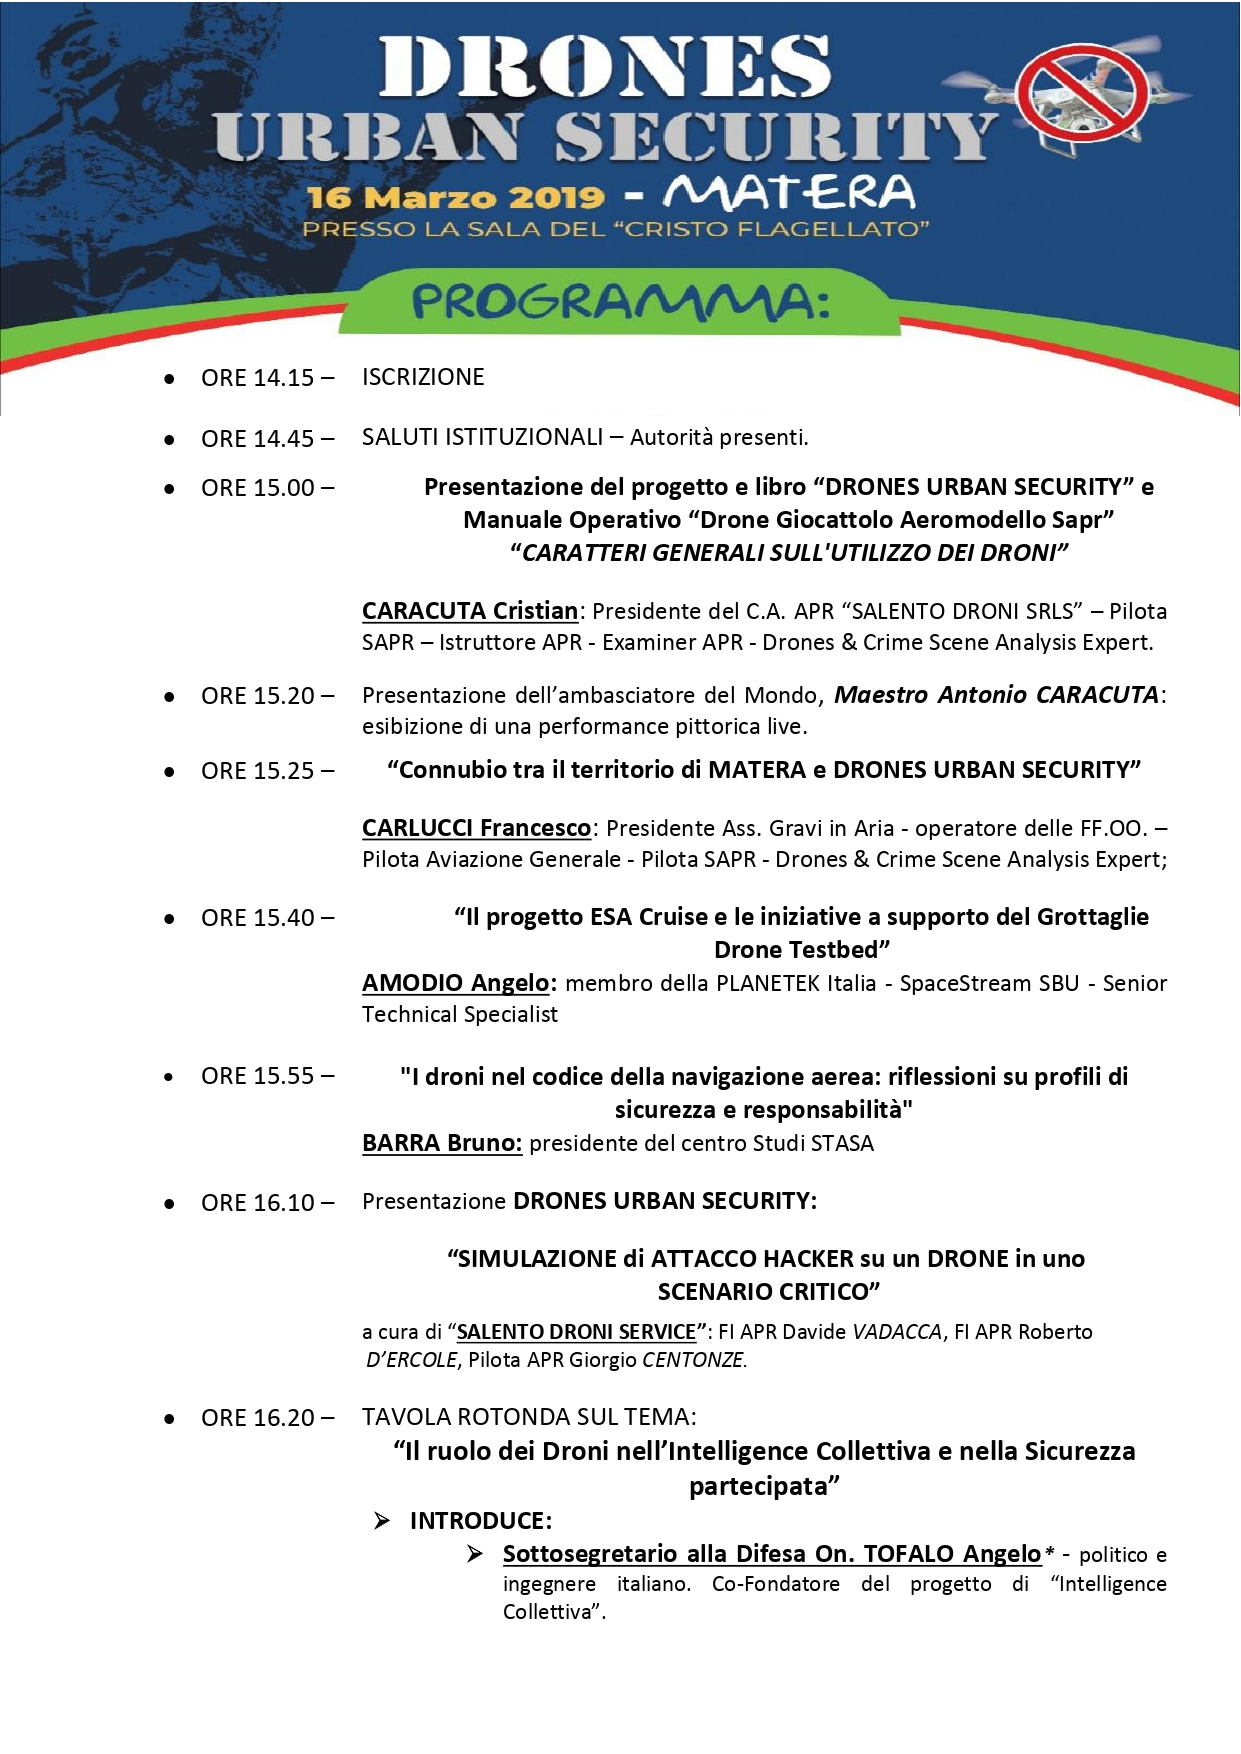 PROGRAMMA nuovo pages to jpg 0001